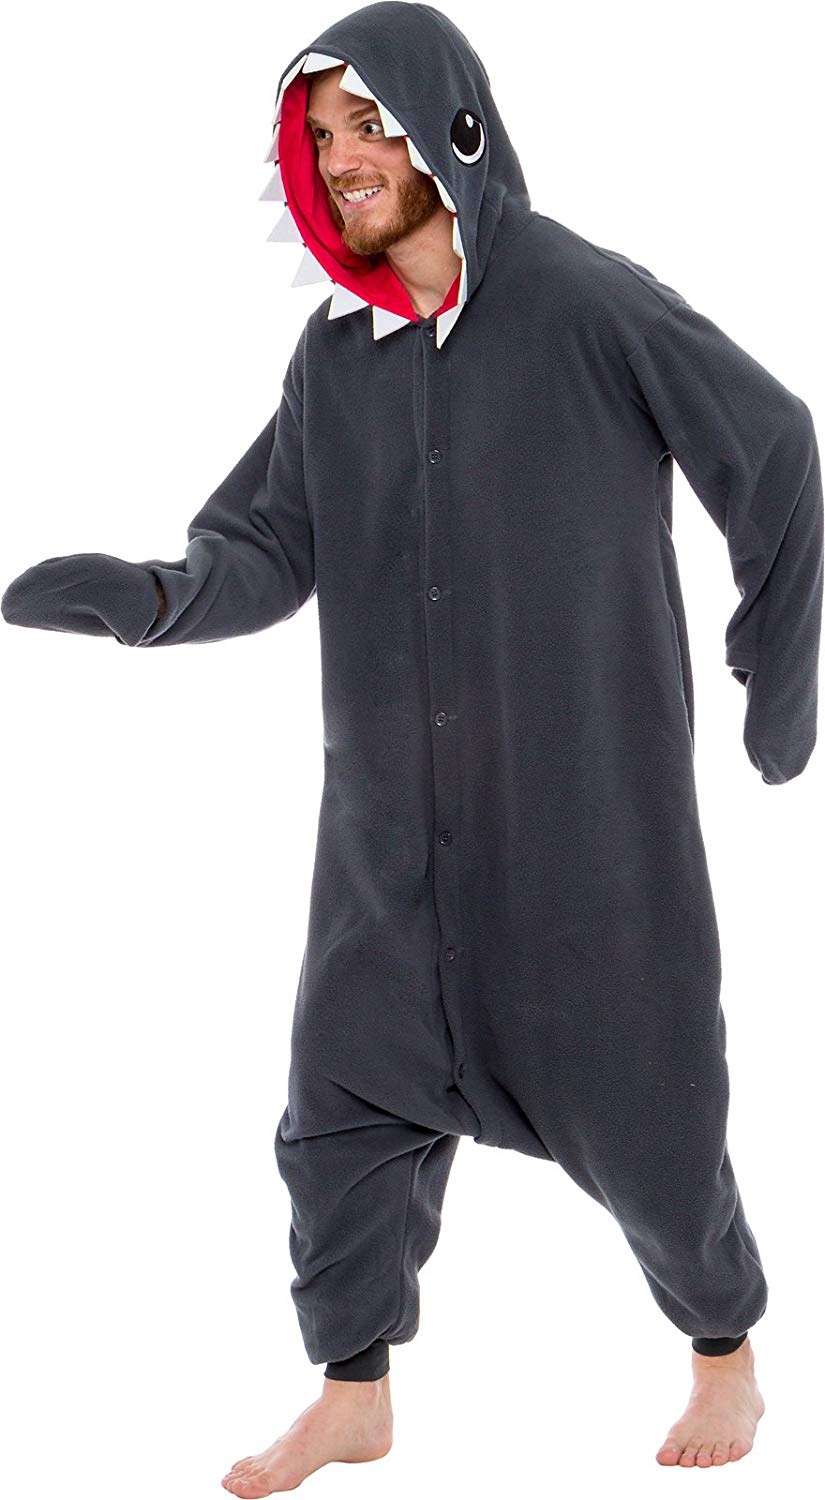 Adult Animal Onesie <br>Grey Shark (Mens)